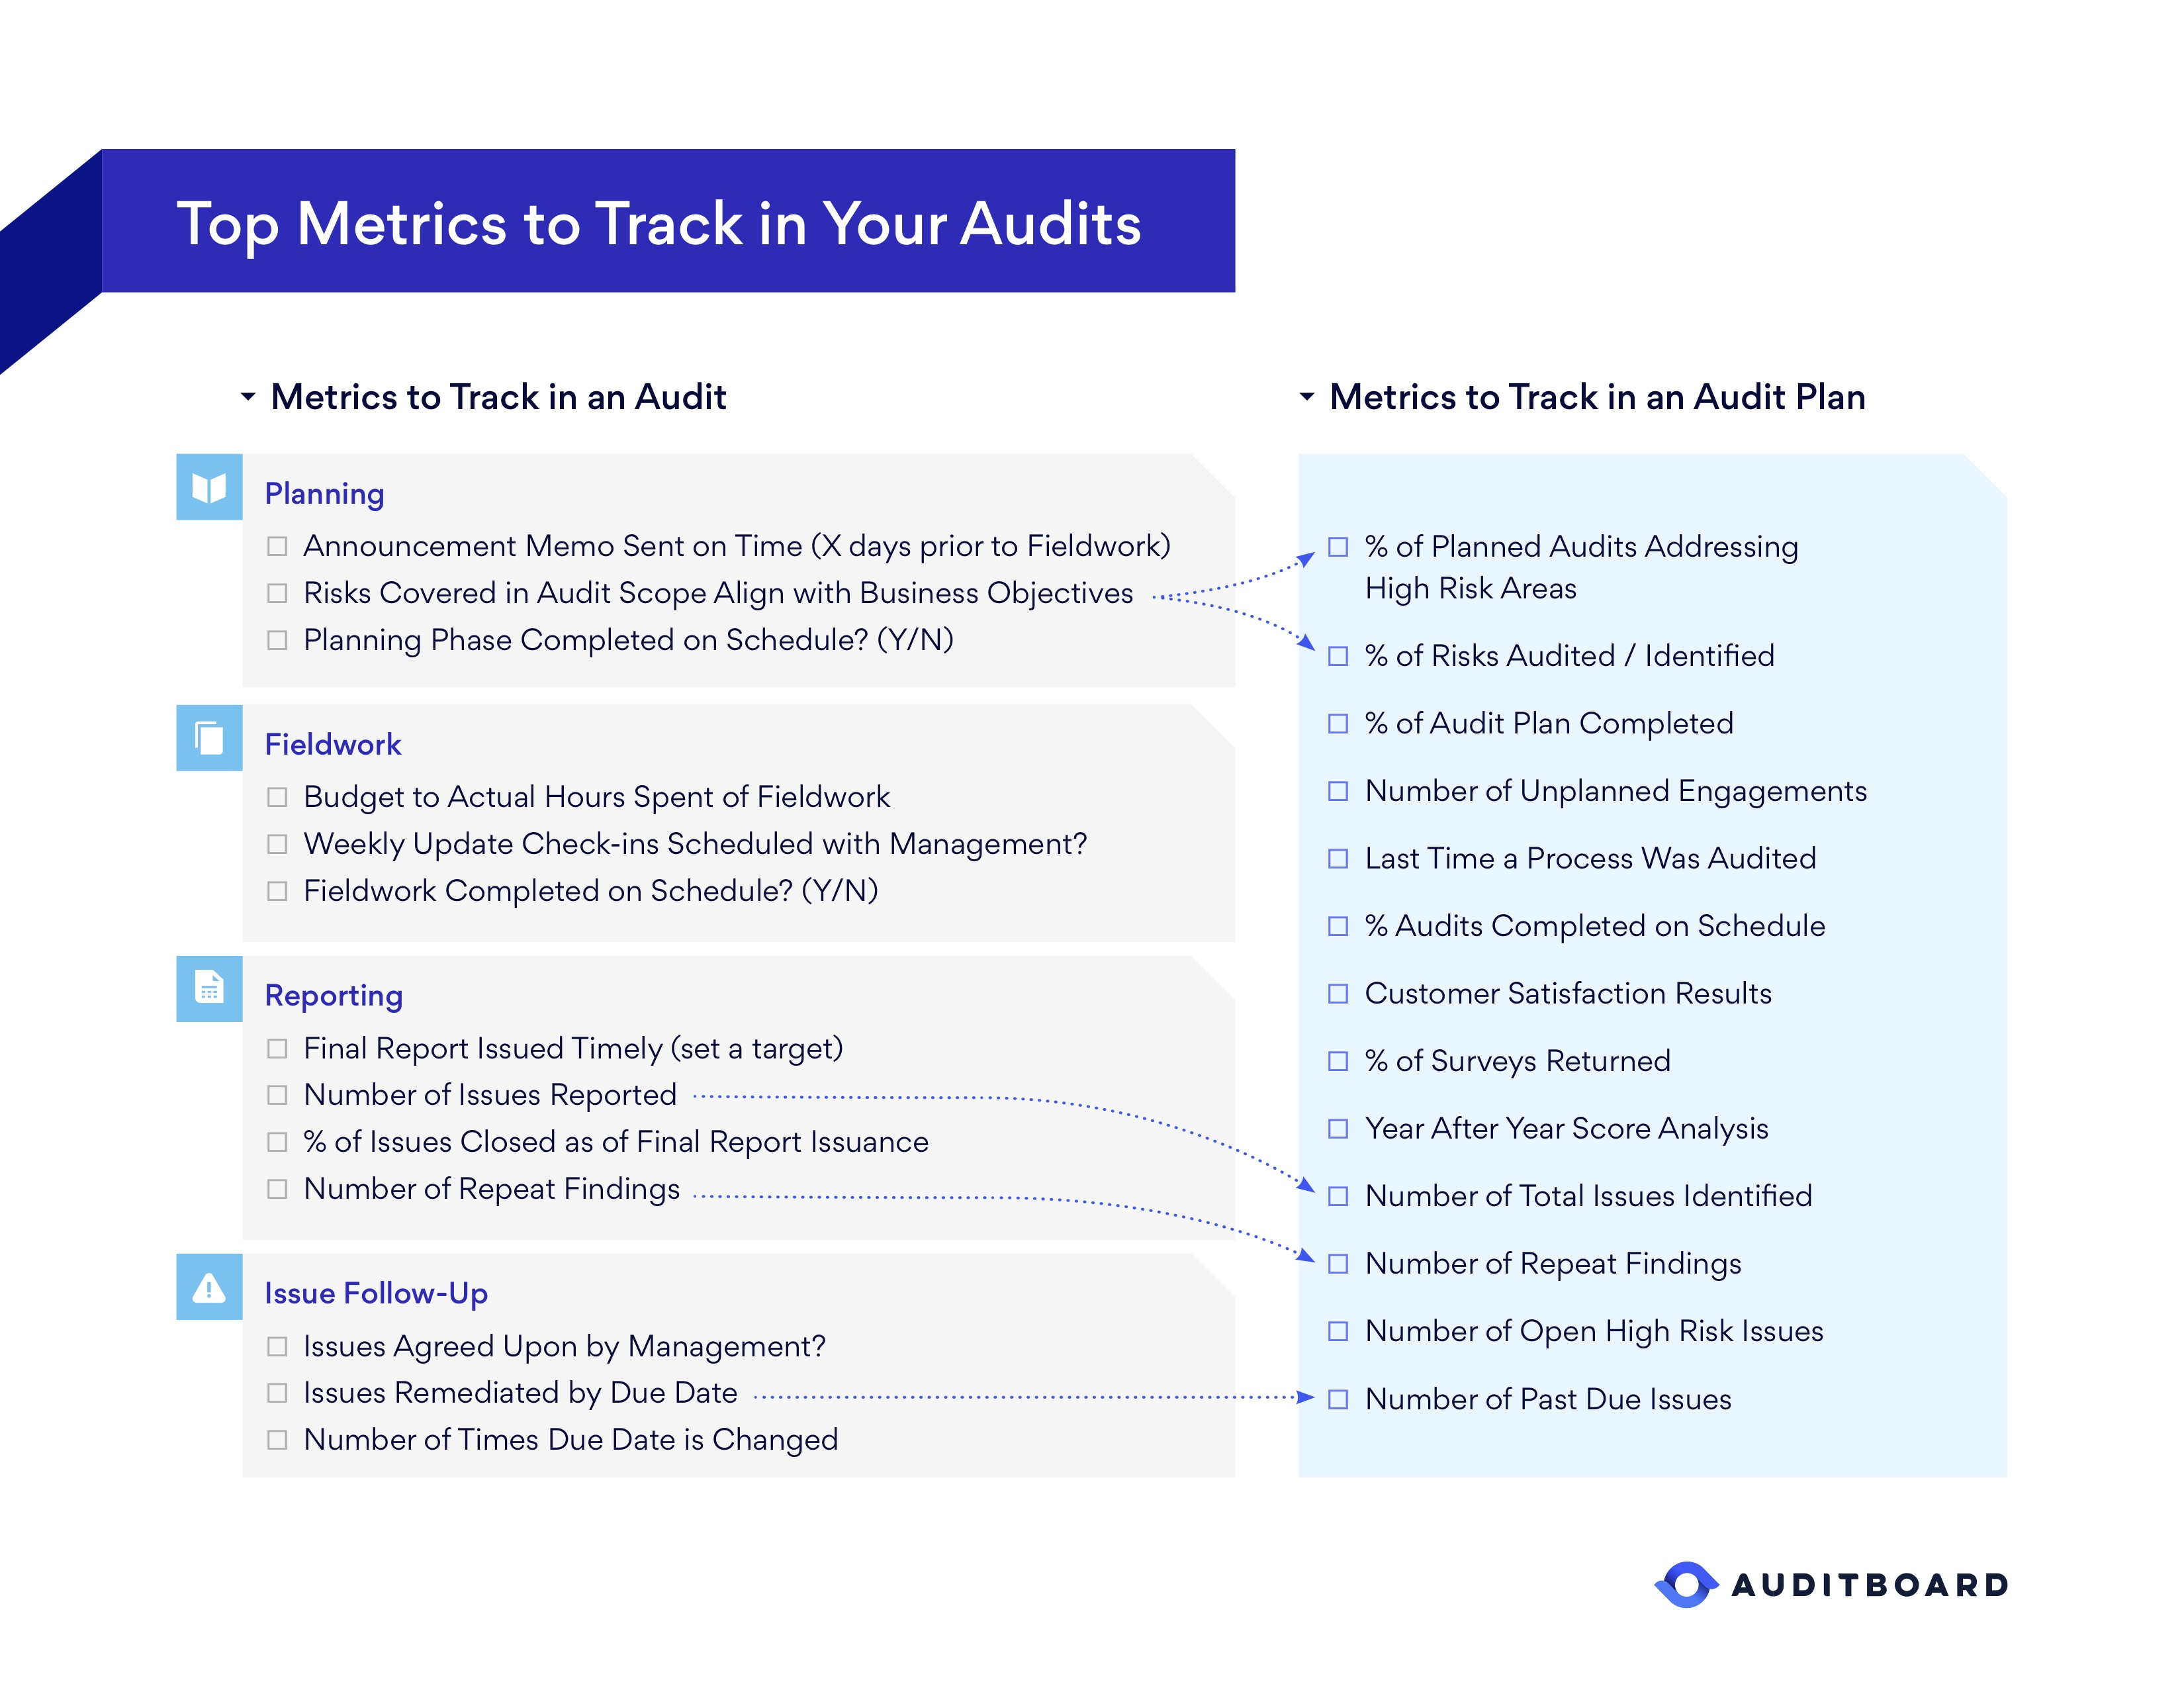 Top Metrics to Track in your Audits Checklist